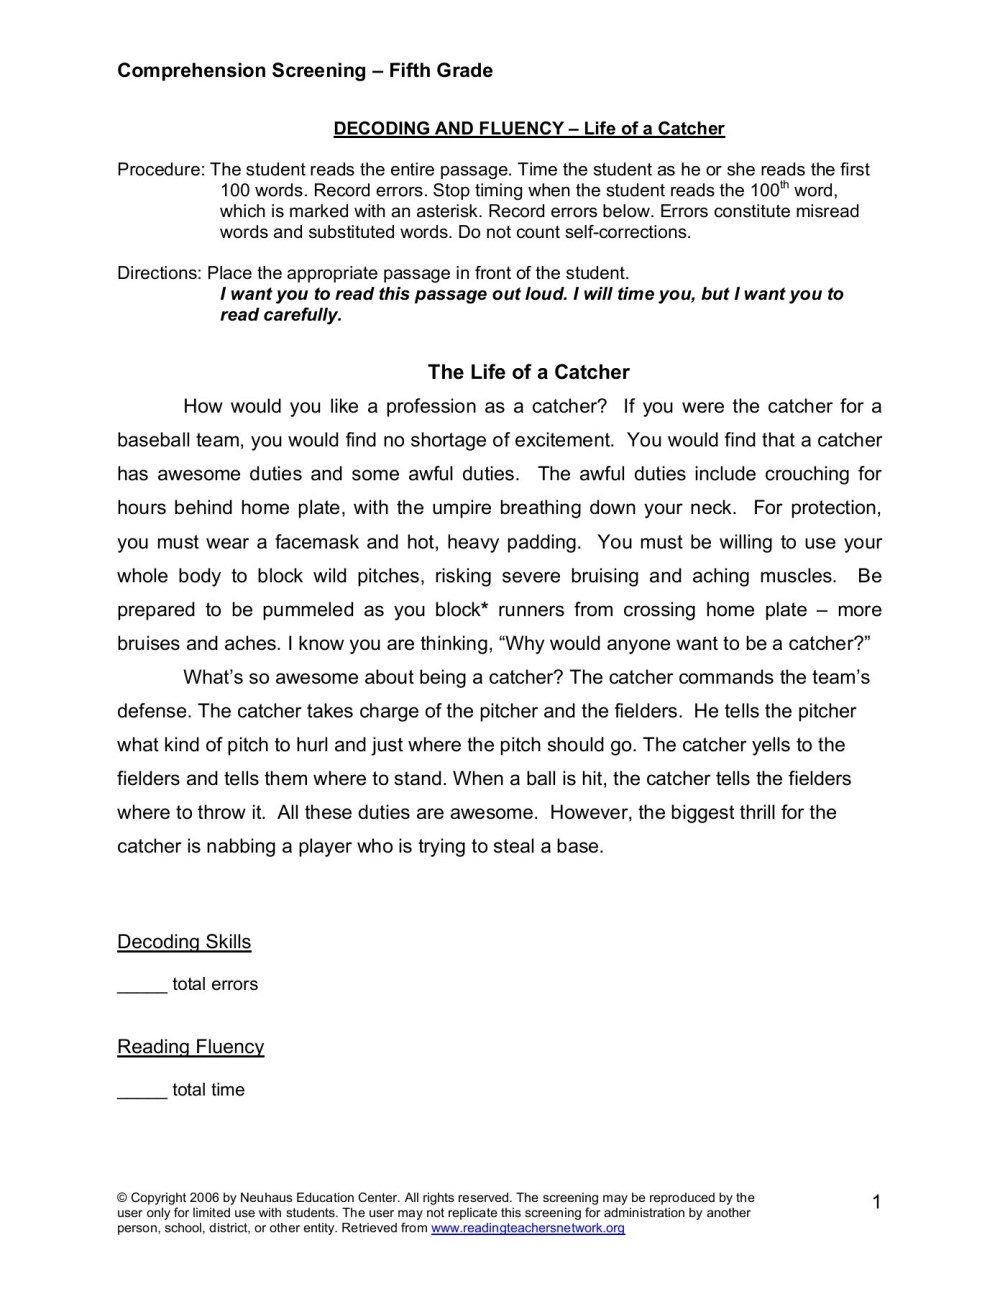 medium resolution of Reading Comprehension Screening for Fifth Grade Pages 1 - 8 - Flip PDF  Download   FlipHTML5